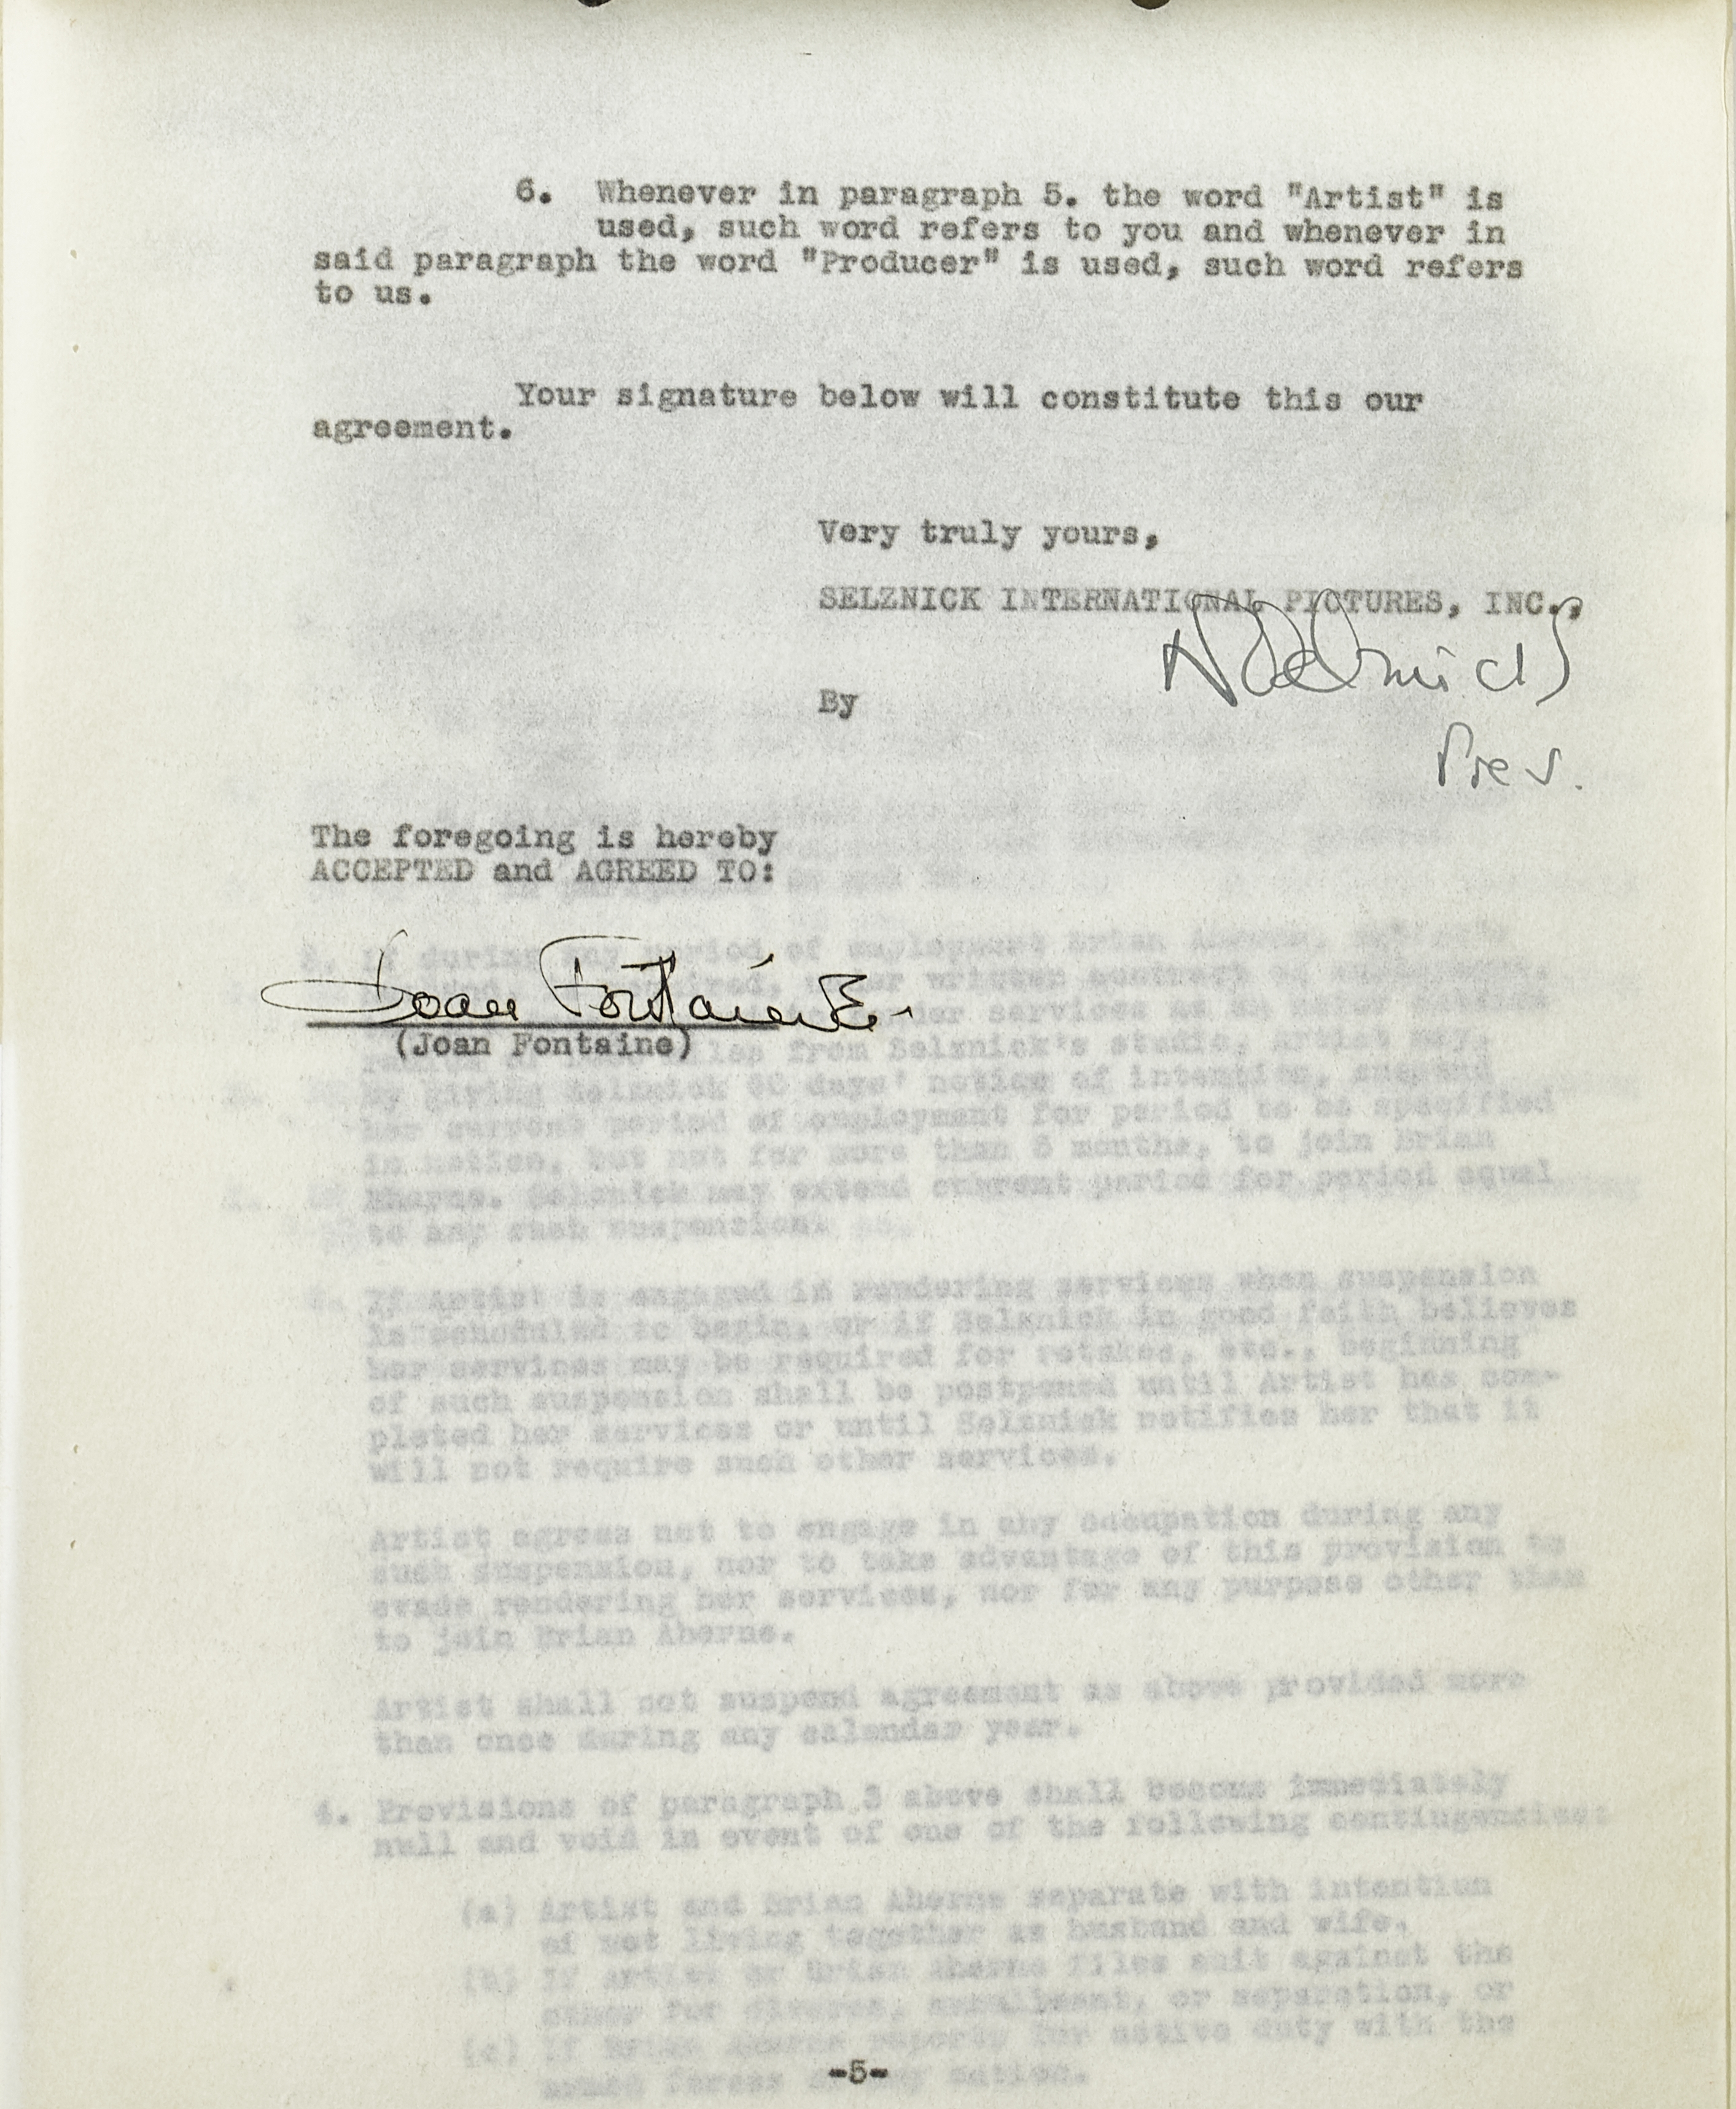 A Joan Fontaine contract with Selznick International Pictures - Image 2 of 2